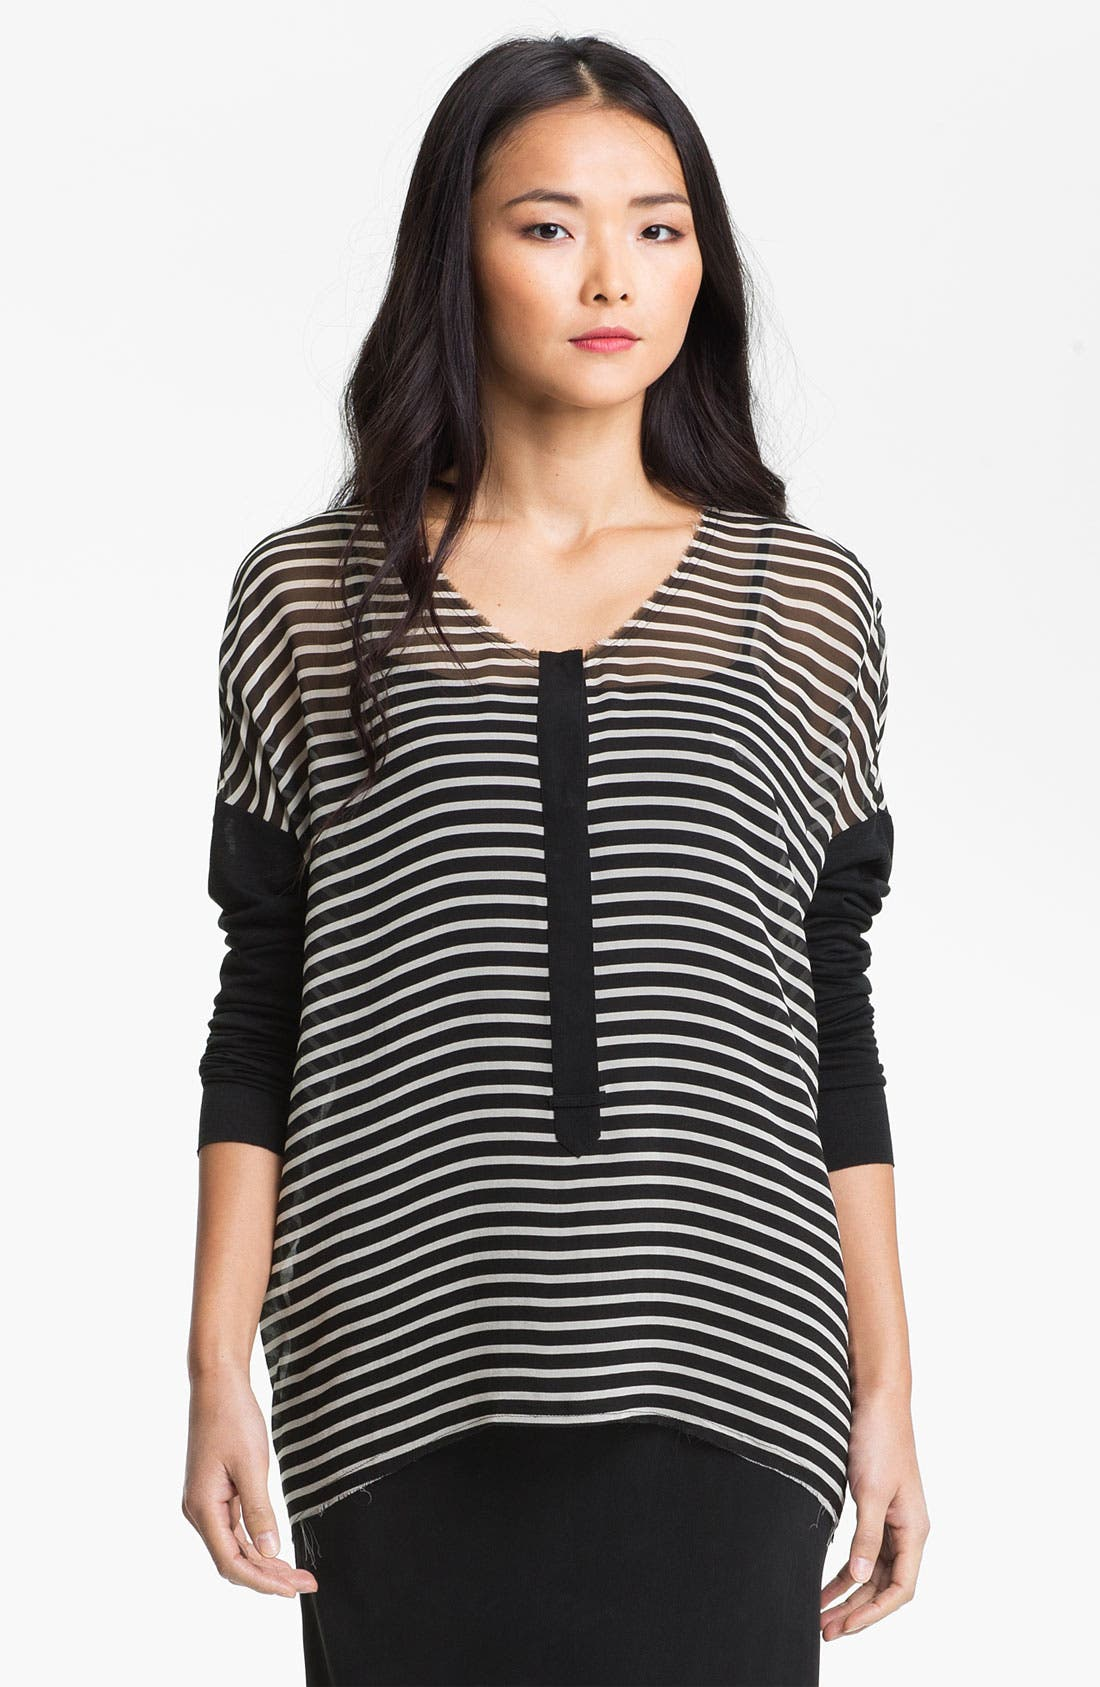 Alternate Image 1 Selected - Go by Go Silk 'Go Popover' Stripe Henley Blouse (Online Exclusive)